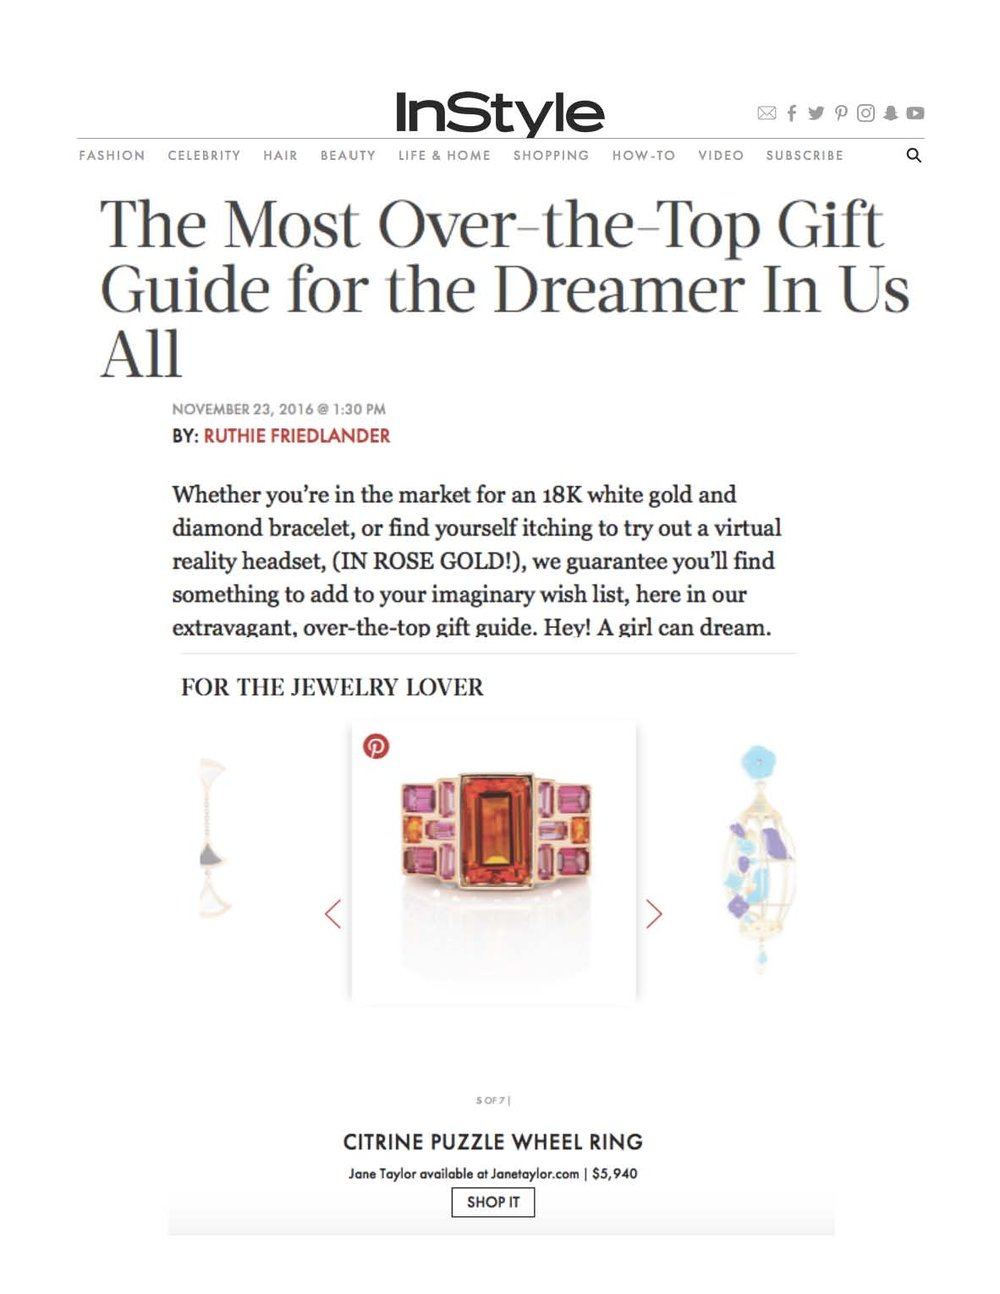 InStyle.com - Over the Top Gift Guide - Jane Taylor Jewelry